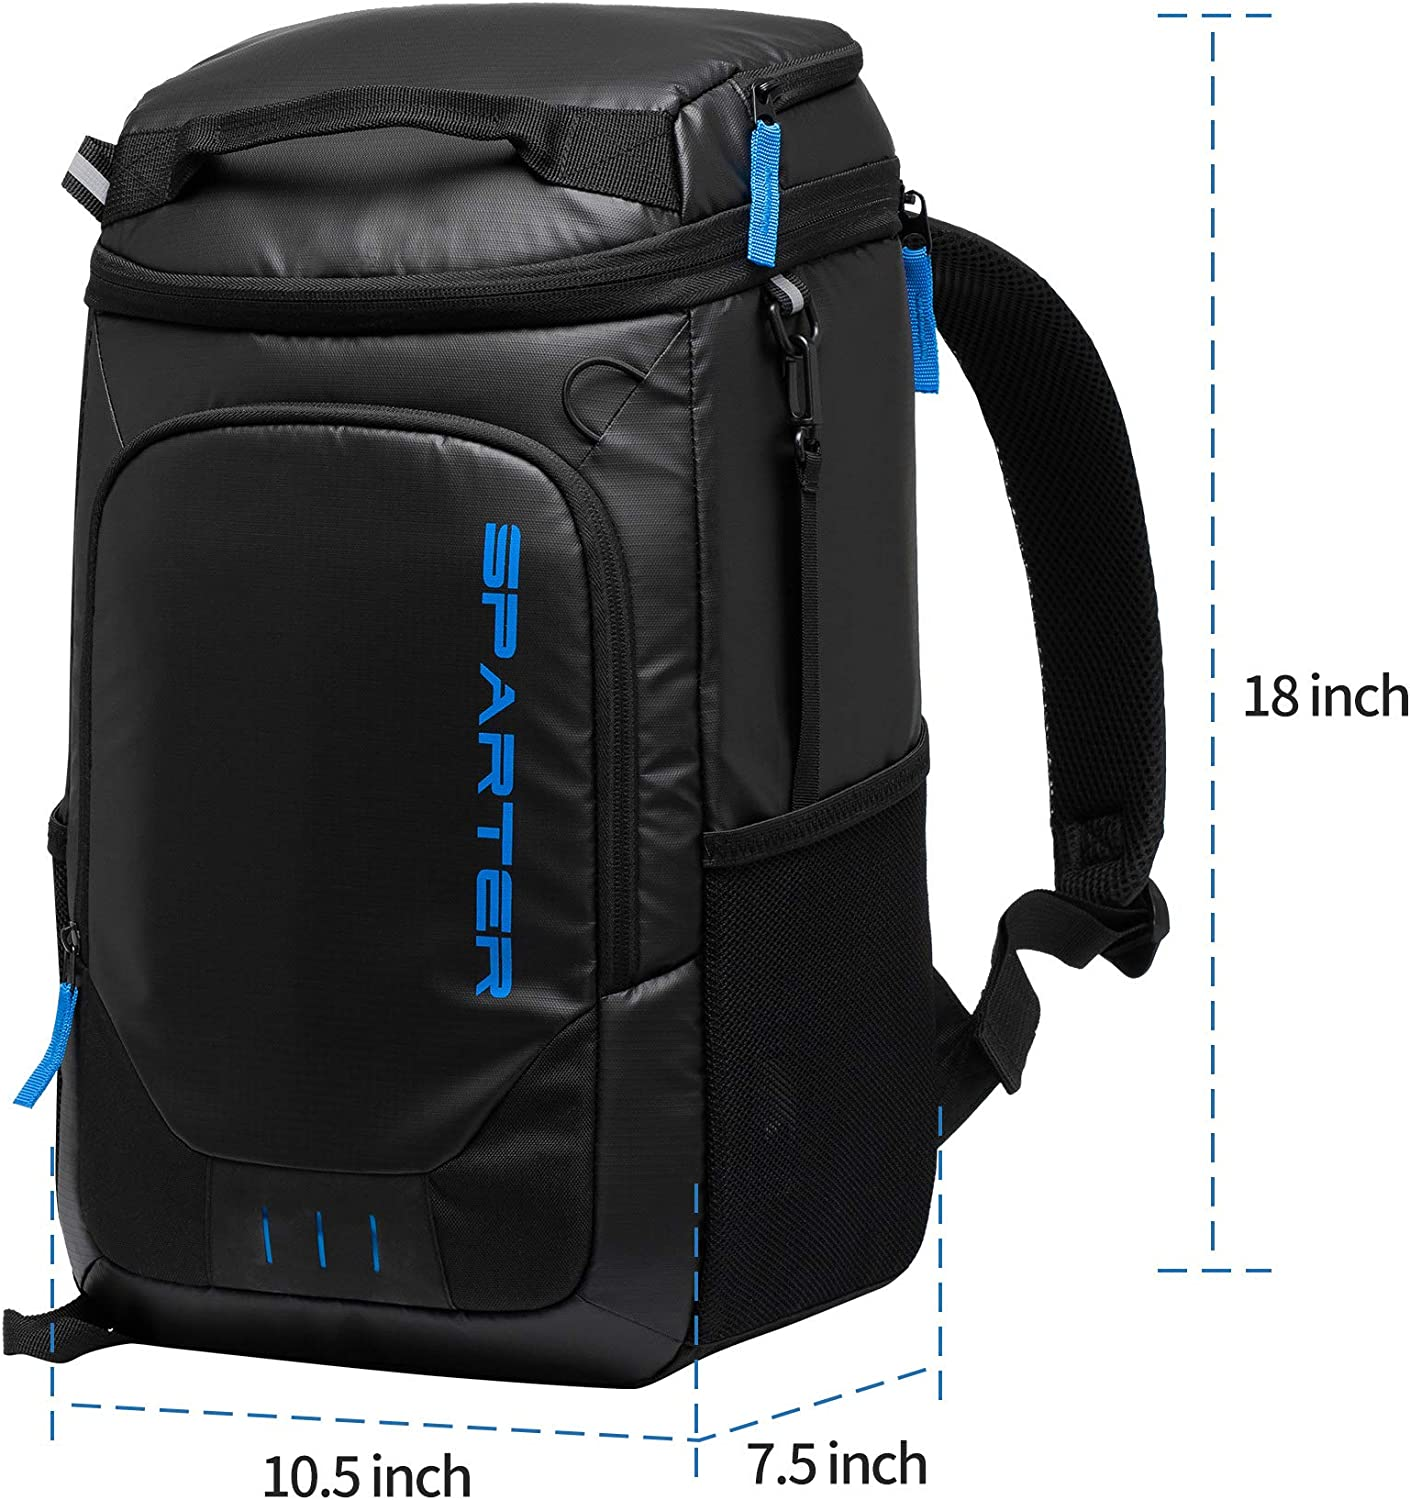 SPARTER Cooler Backpack 30//32 Cans Lightweight Insulated Backpack Cooler Leak-Proof Cooler Bag Large Capacity for Picnics Hiking Beach Park Camping